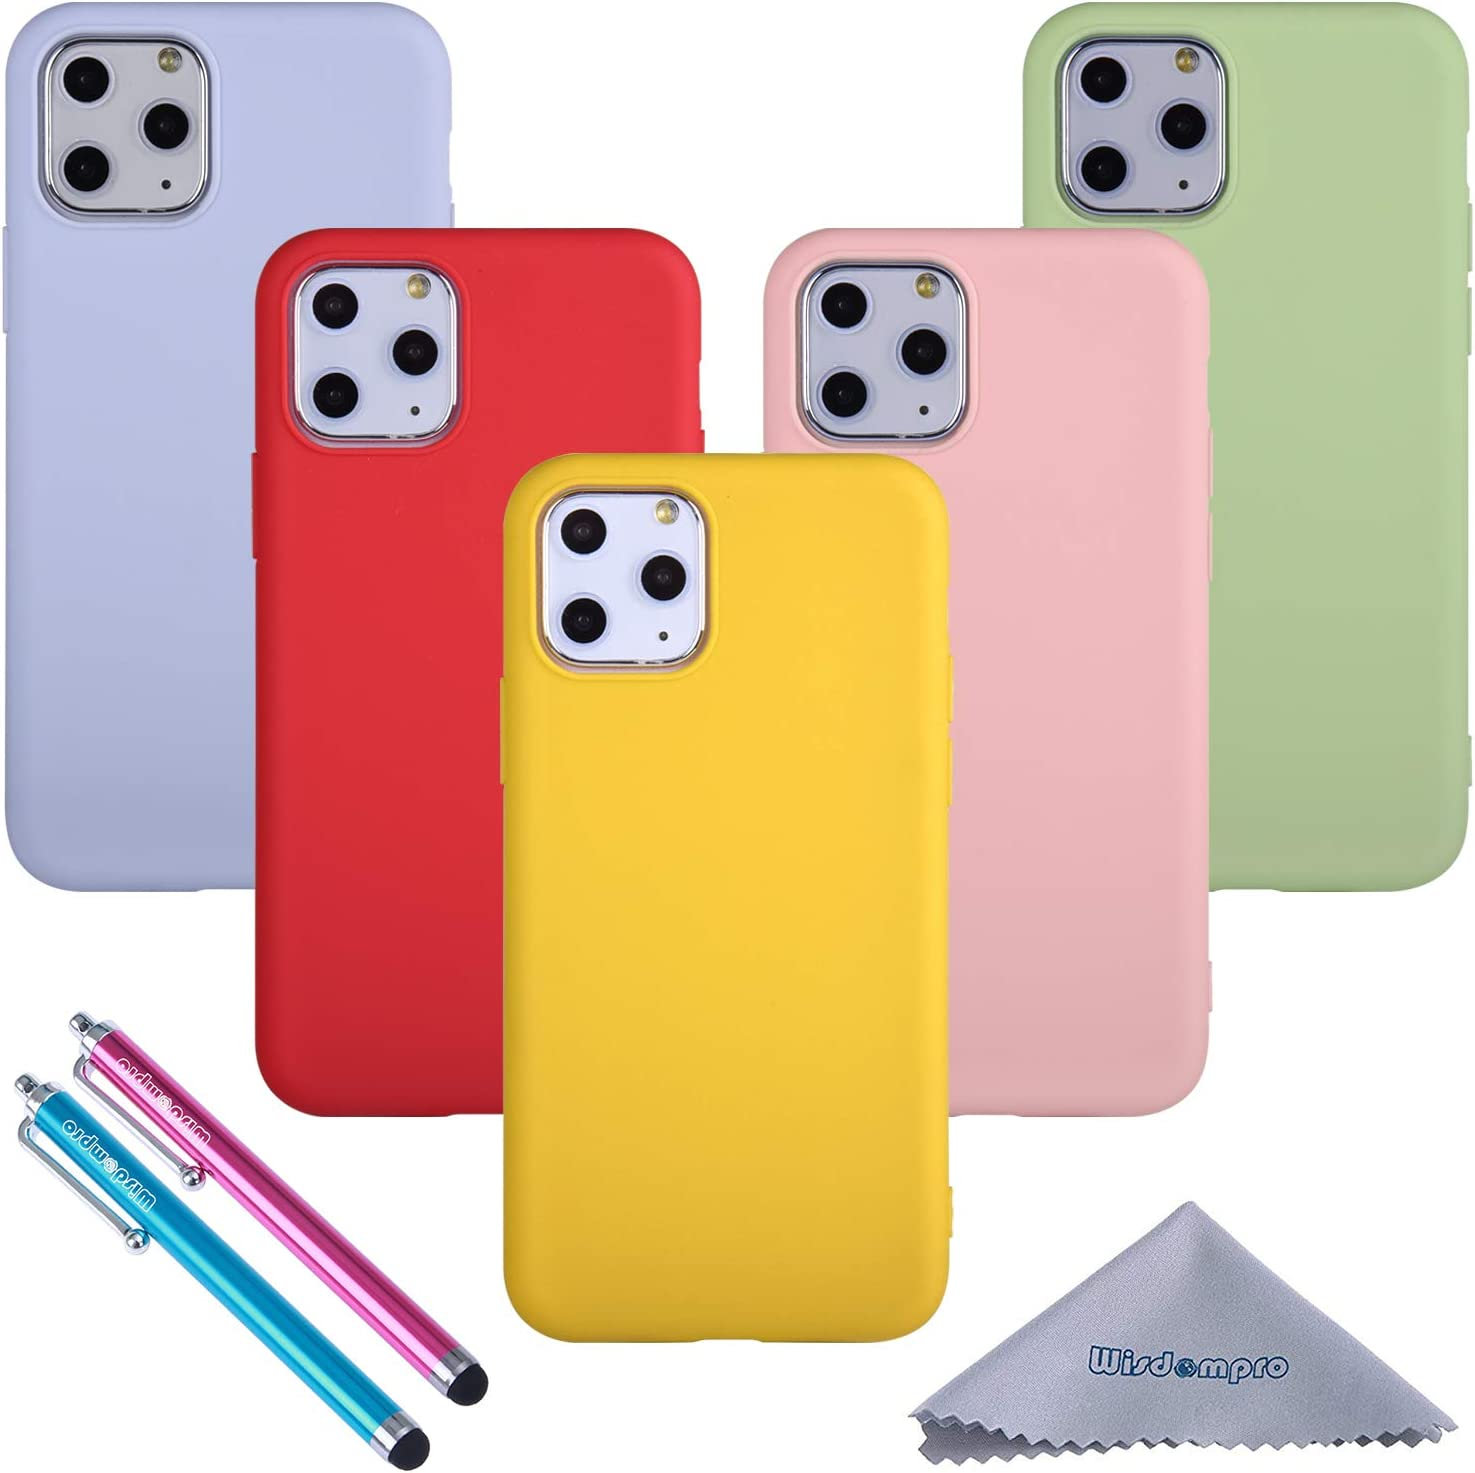 iPhone 11 Pro Case, Wisdompro Bundle of 5 Pack Extra Thin Slim Soft TPU Gel Protective Case Cover for 5.8 Inches Apple iPhone 11 Pro (Green, Light Blue, Pink, Yellow, Red)